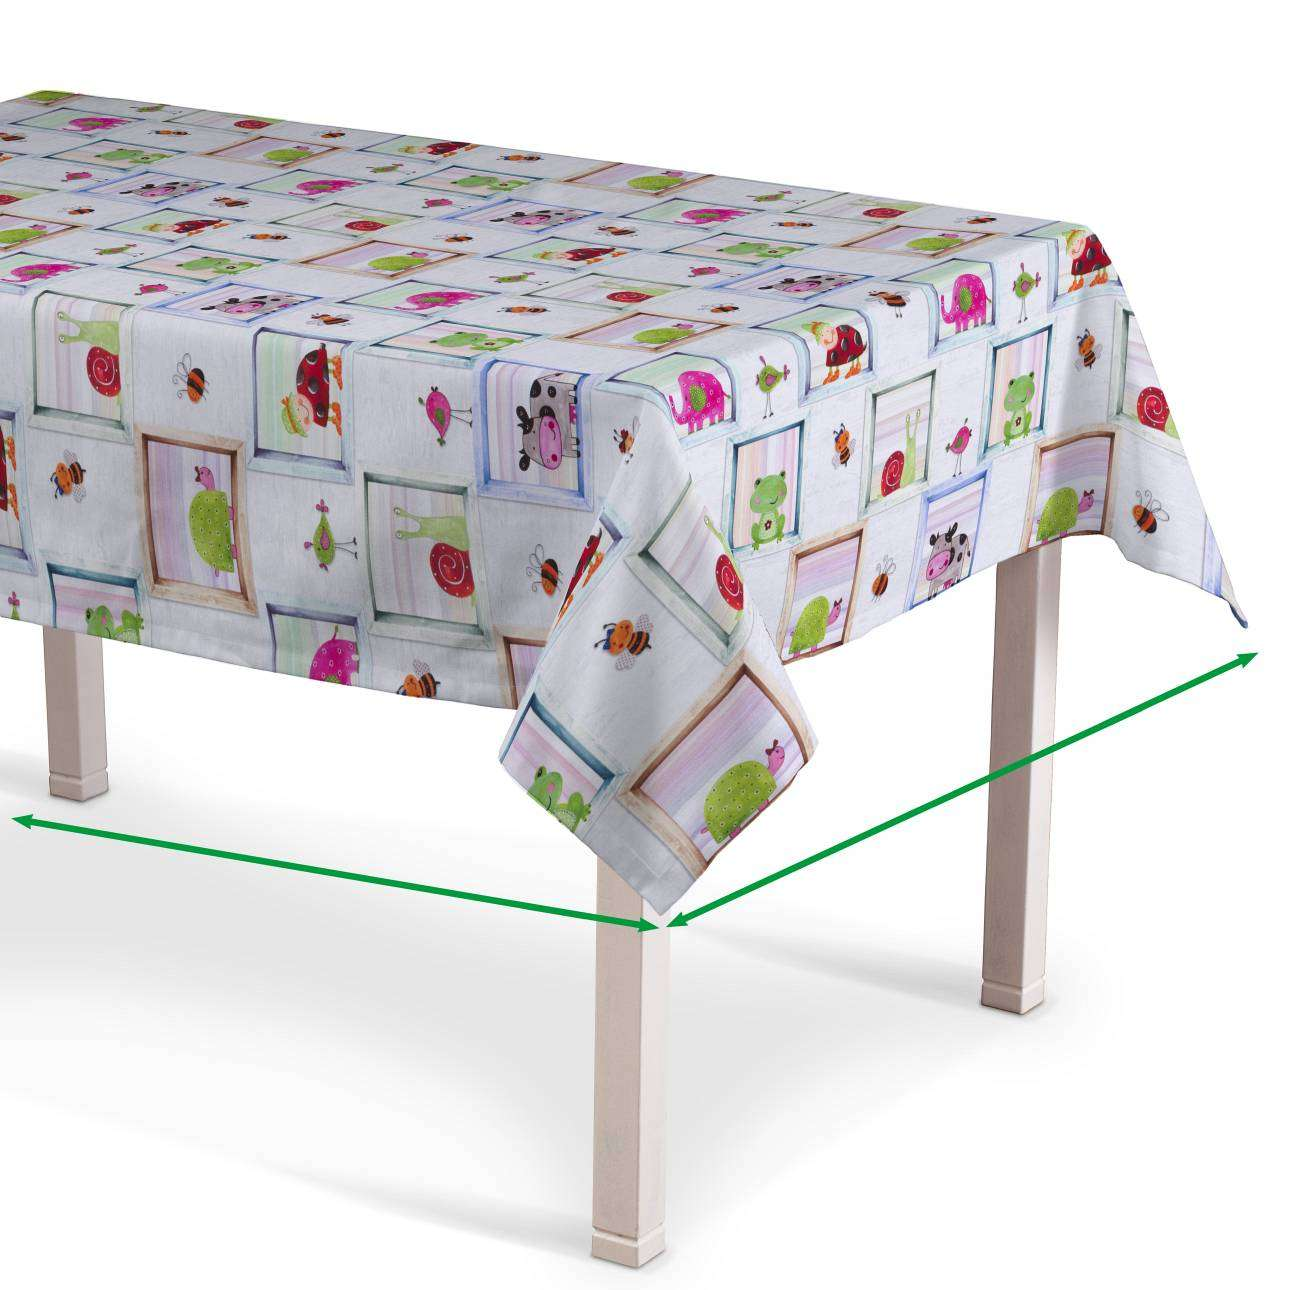 Rectangular tablecloth in collection Apanona, fabric: 151-04